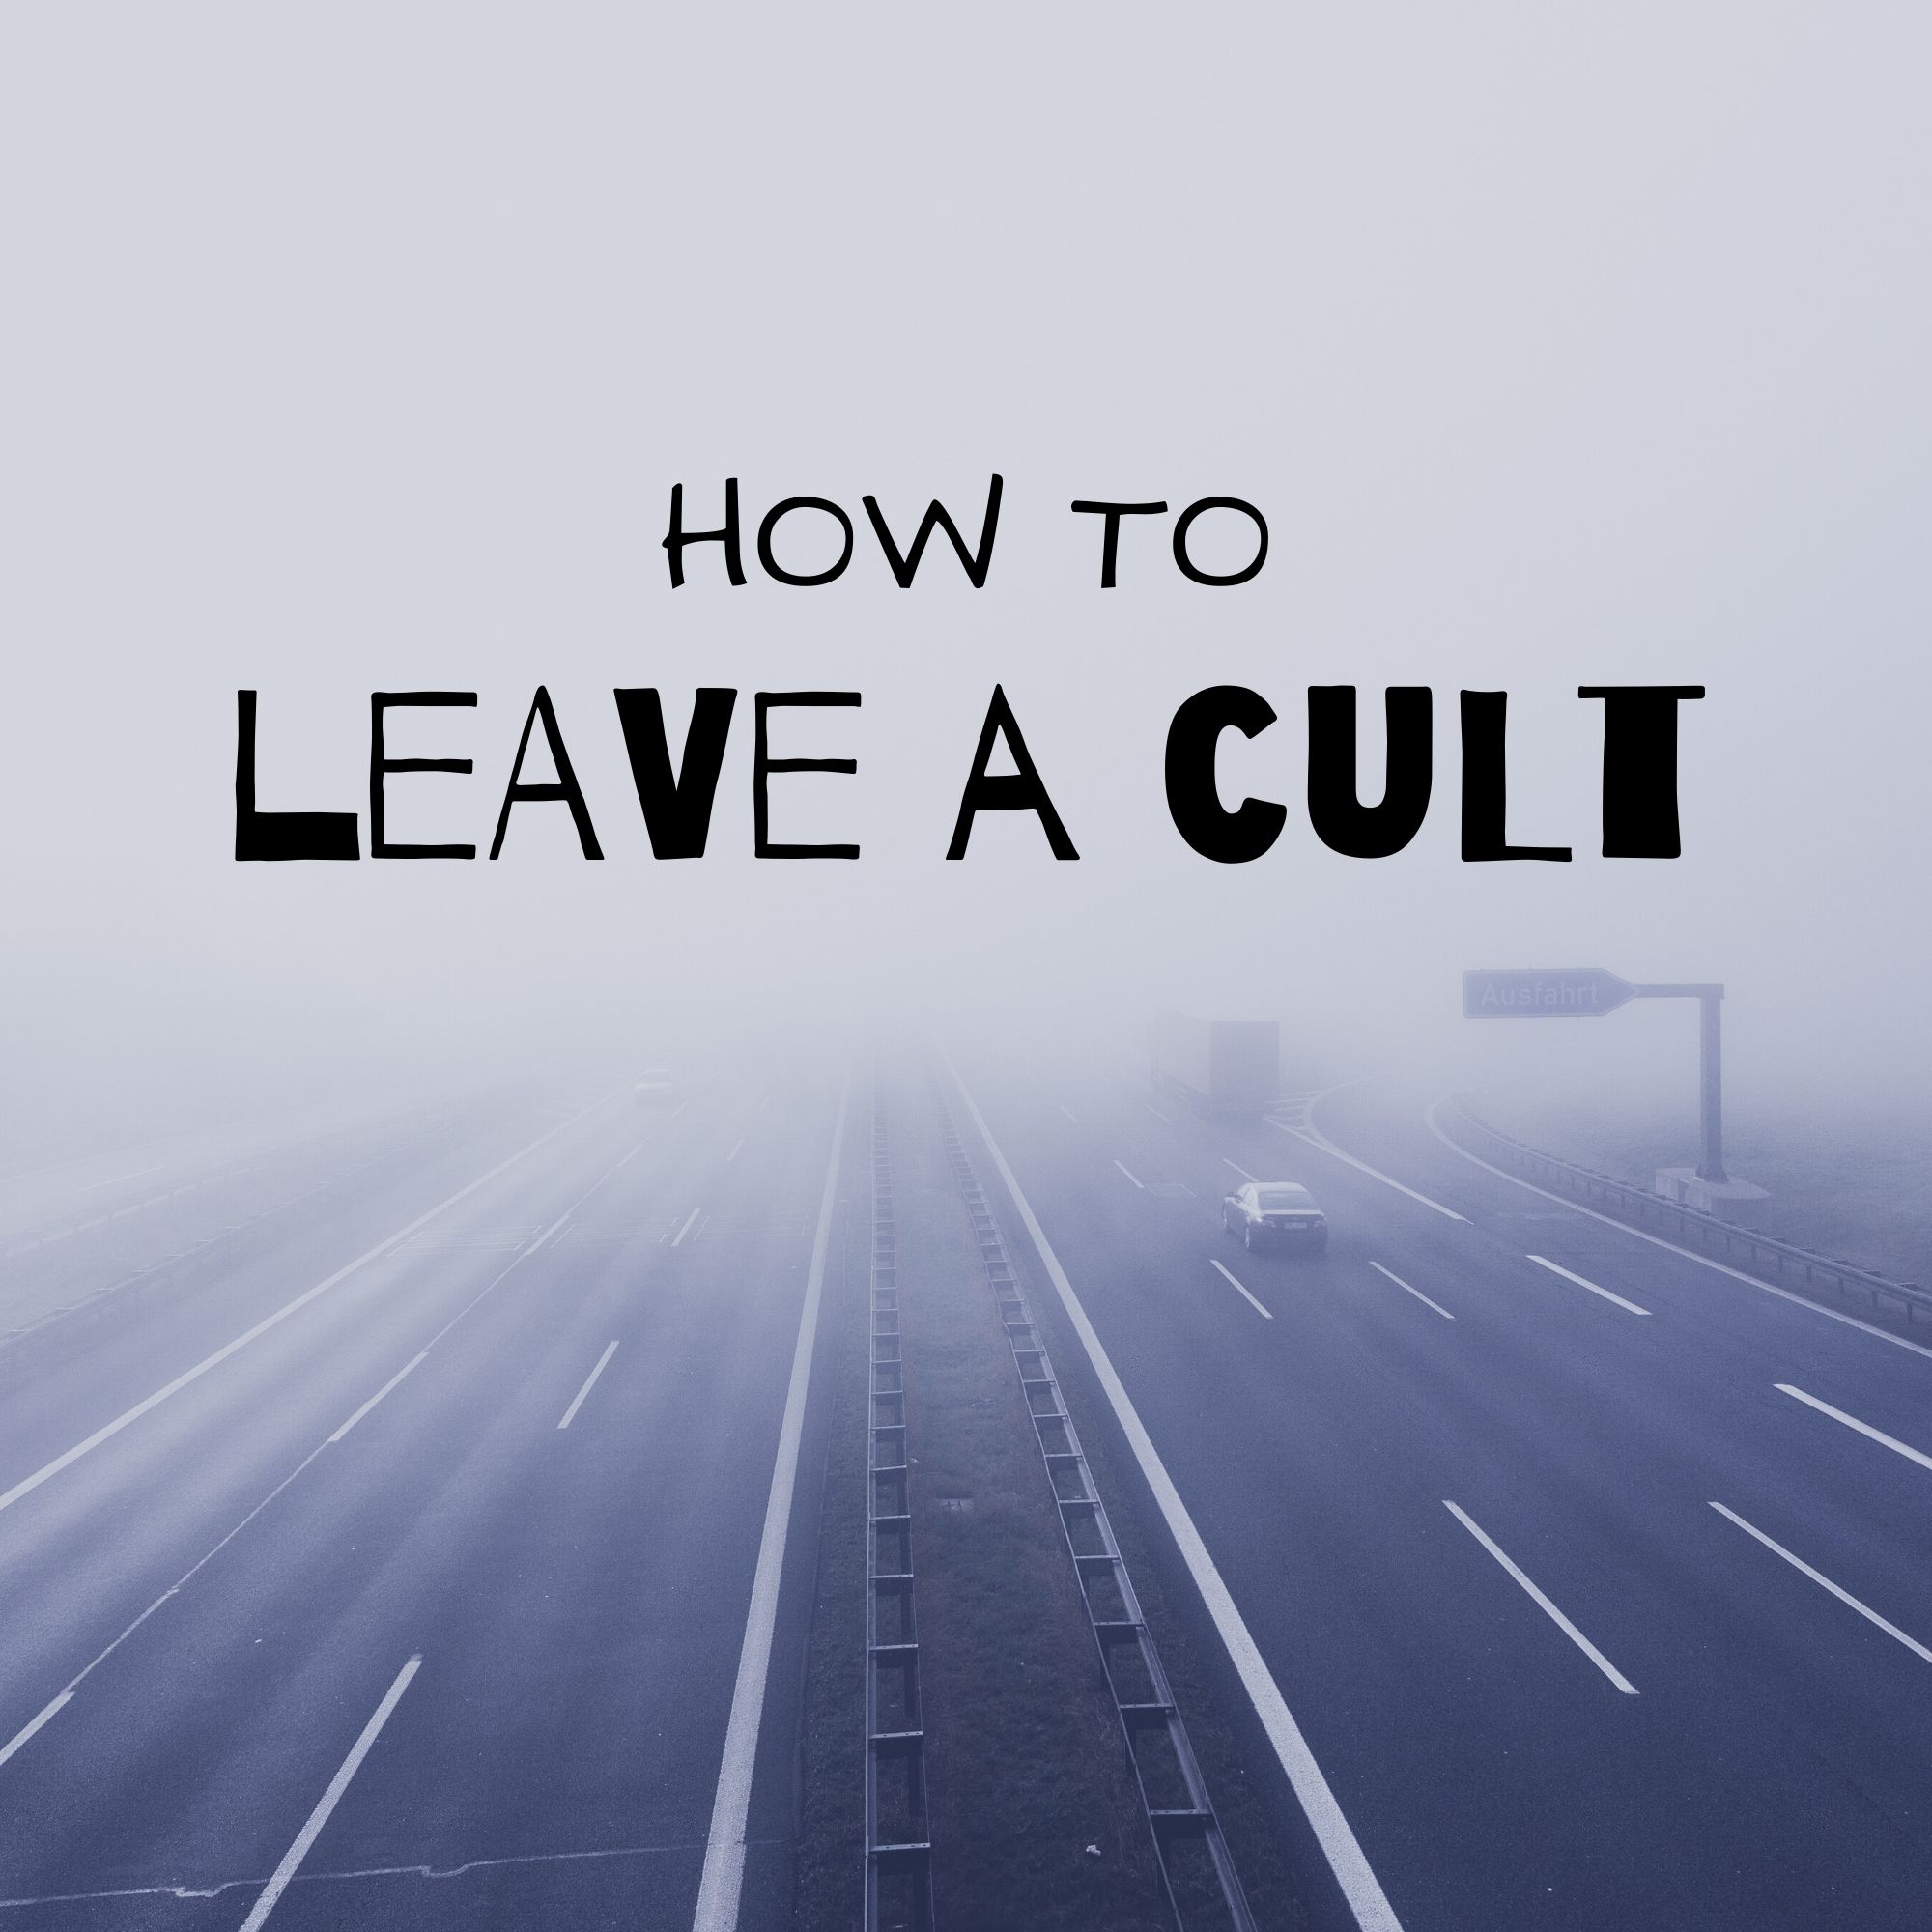 How To Leave a Cult